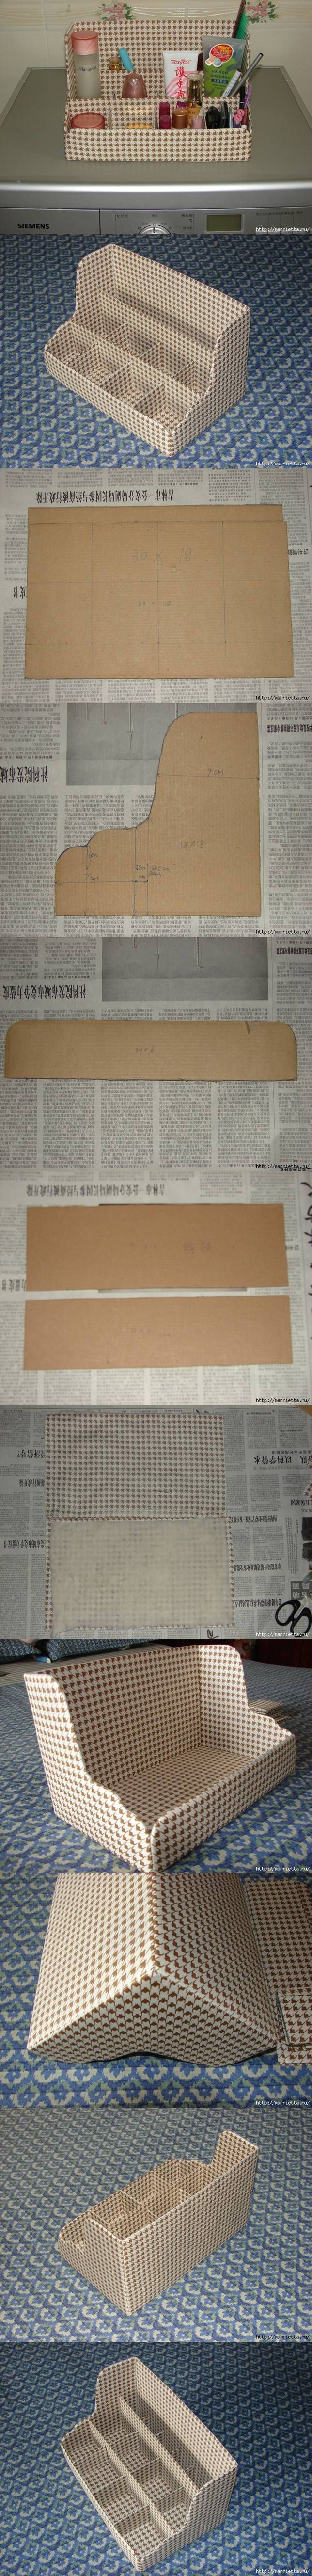 DIY Cardboard Shelves Organizer with a little tweaking this would make a cute desk top for bjd.